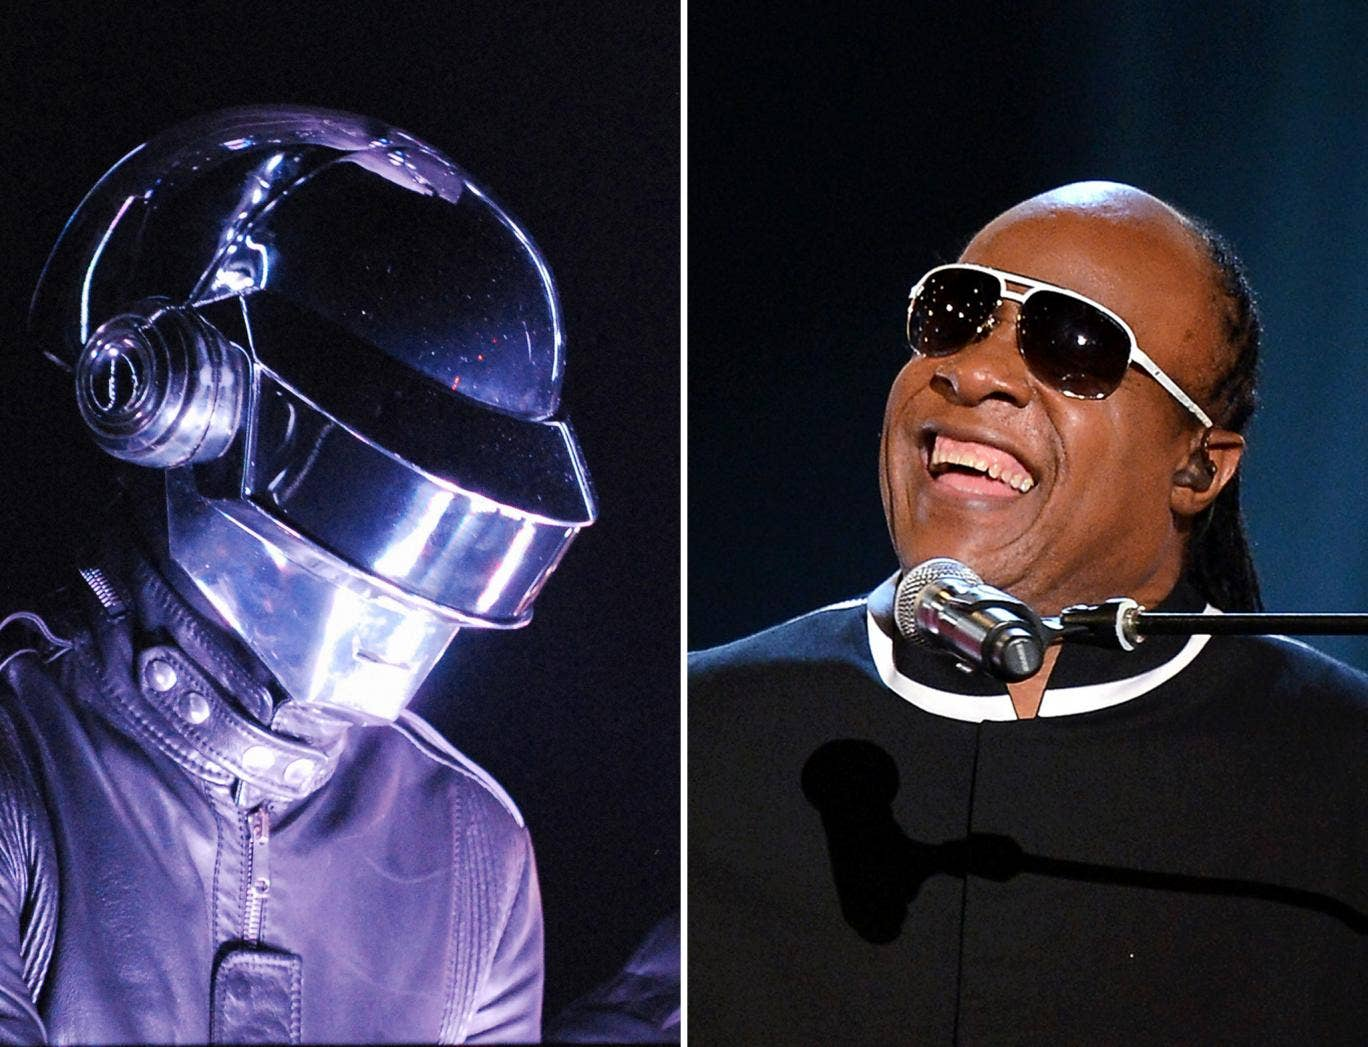 Daft Punk and Steve Wonder are collaborating for a performance at the Grammy Awards on 26 January